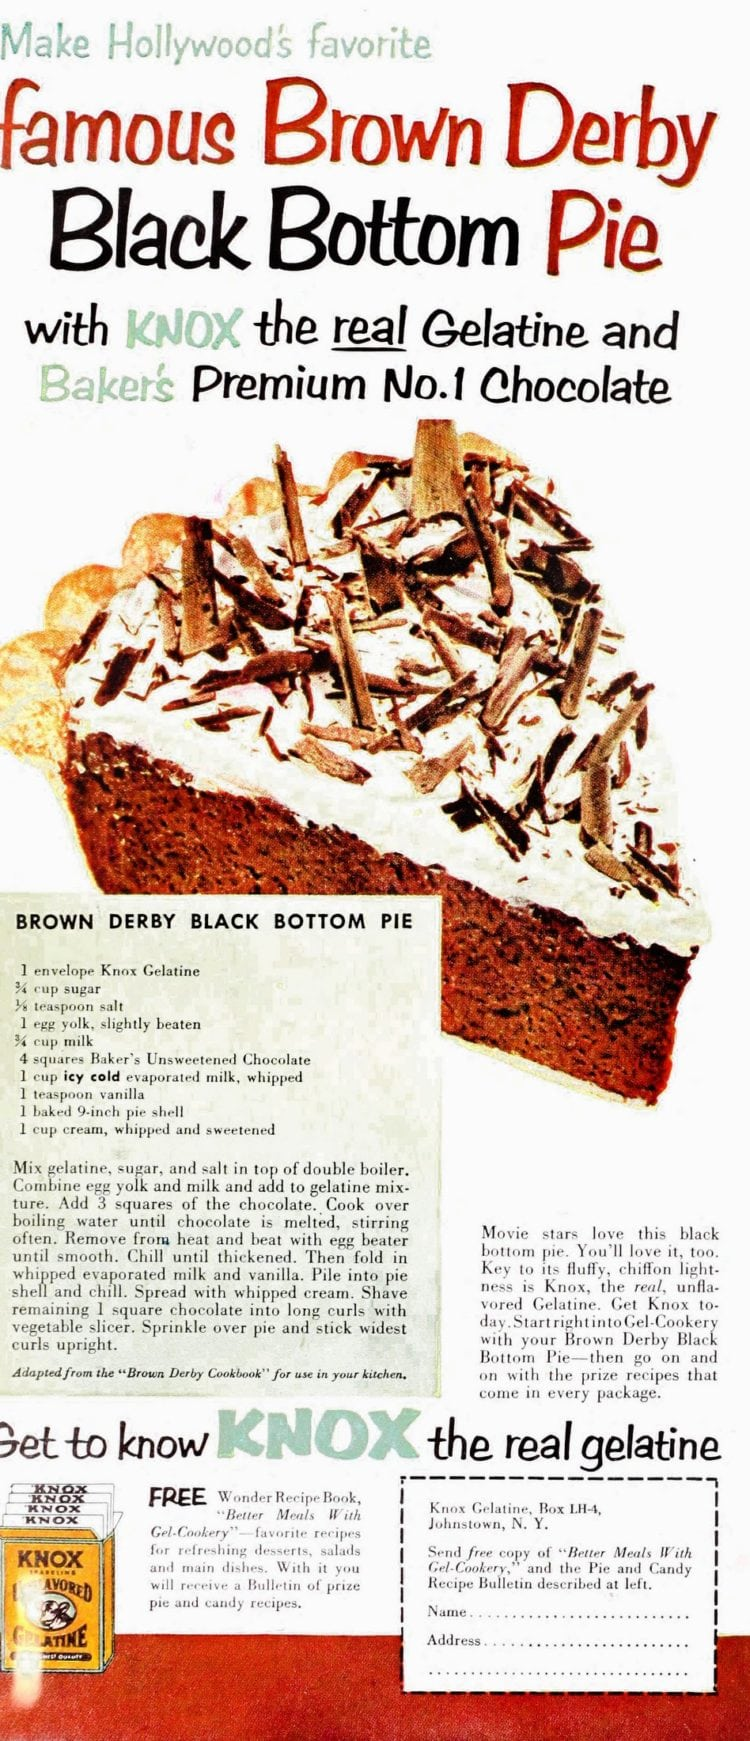 Brown derby black bottom pie recipe